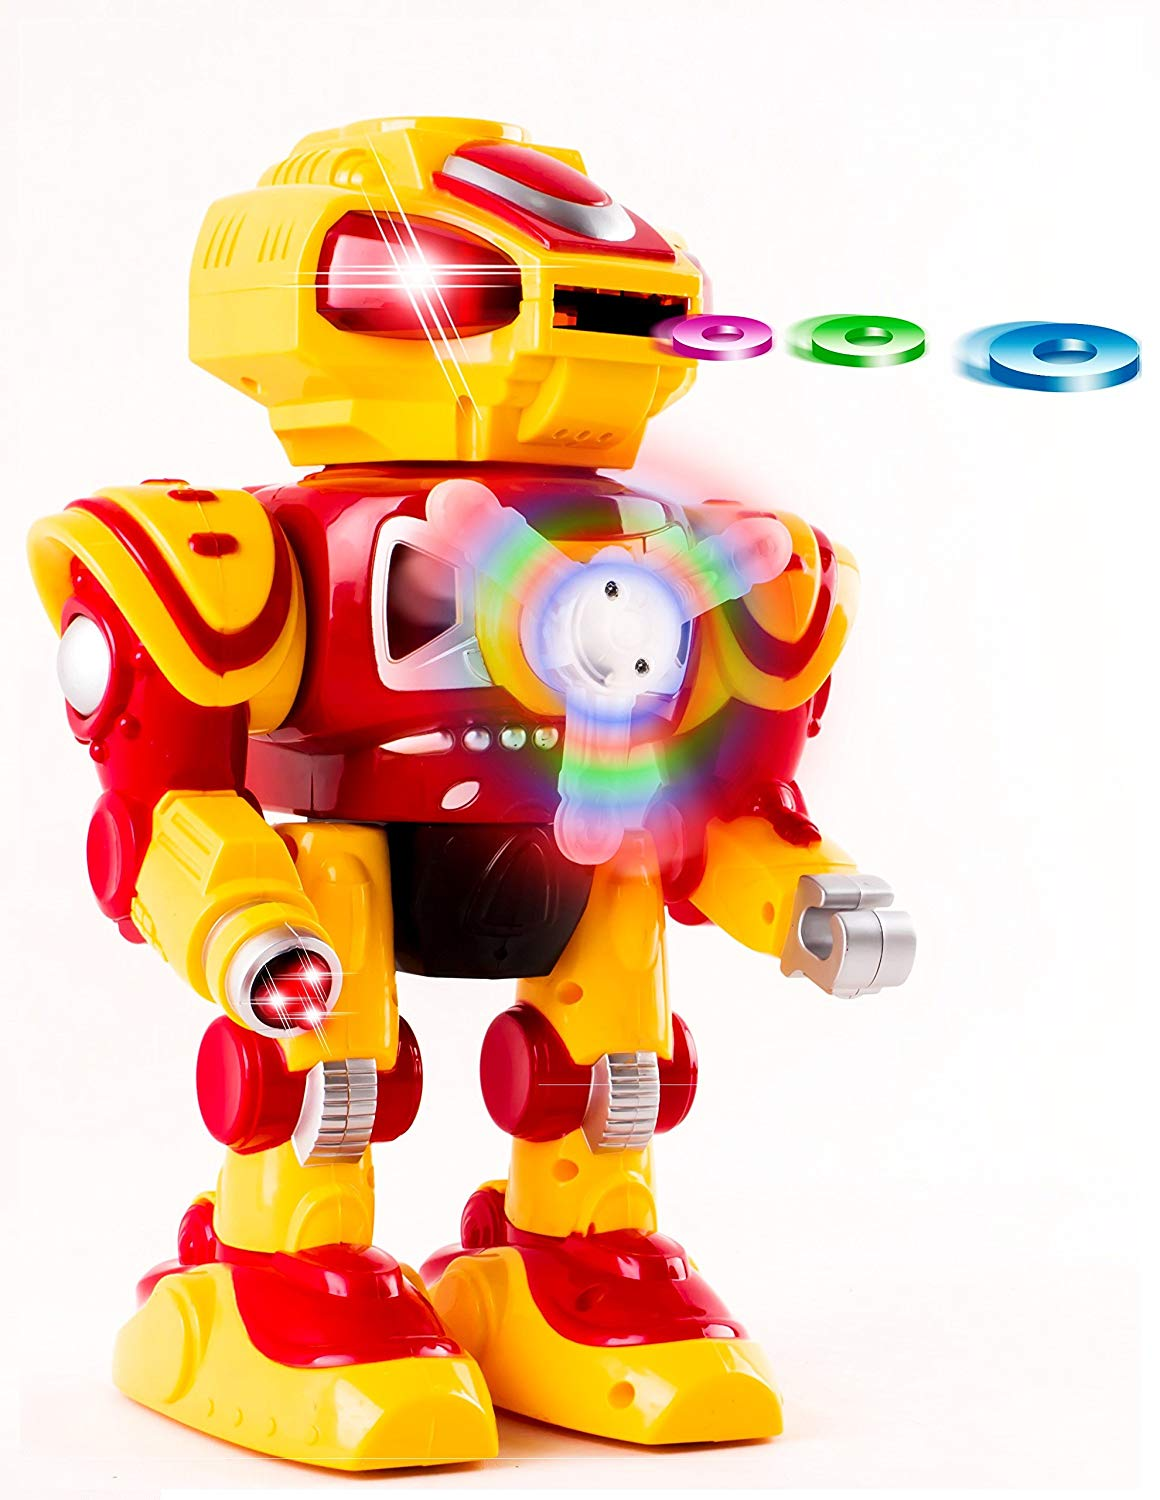 Super Android Toy Robot With Disc Shooting Walking Flashing Lights And Sound Features... by Vokodo